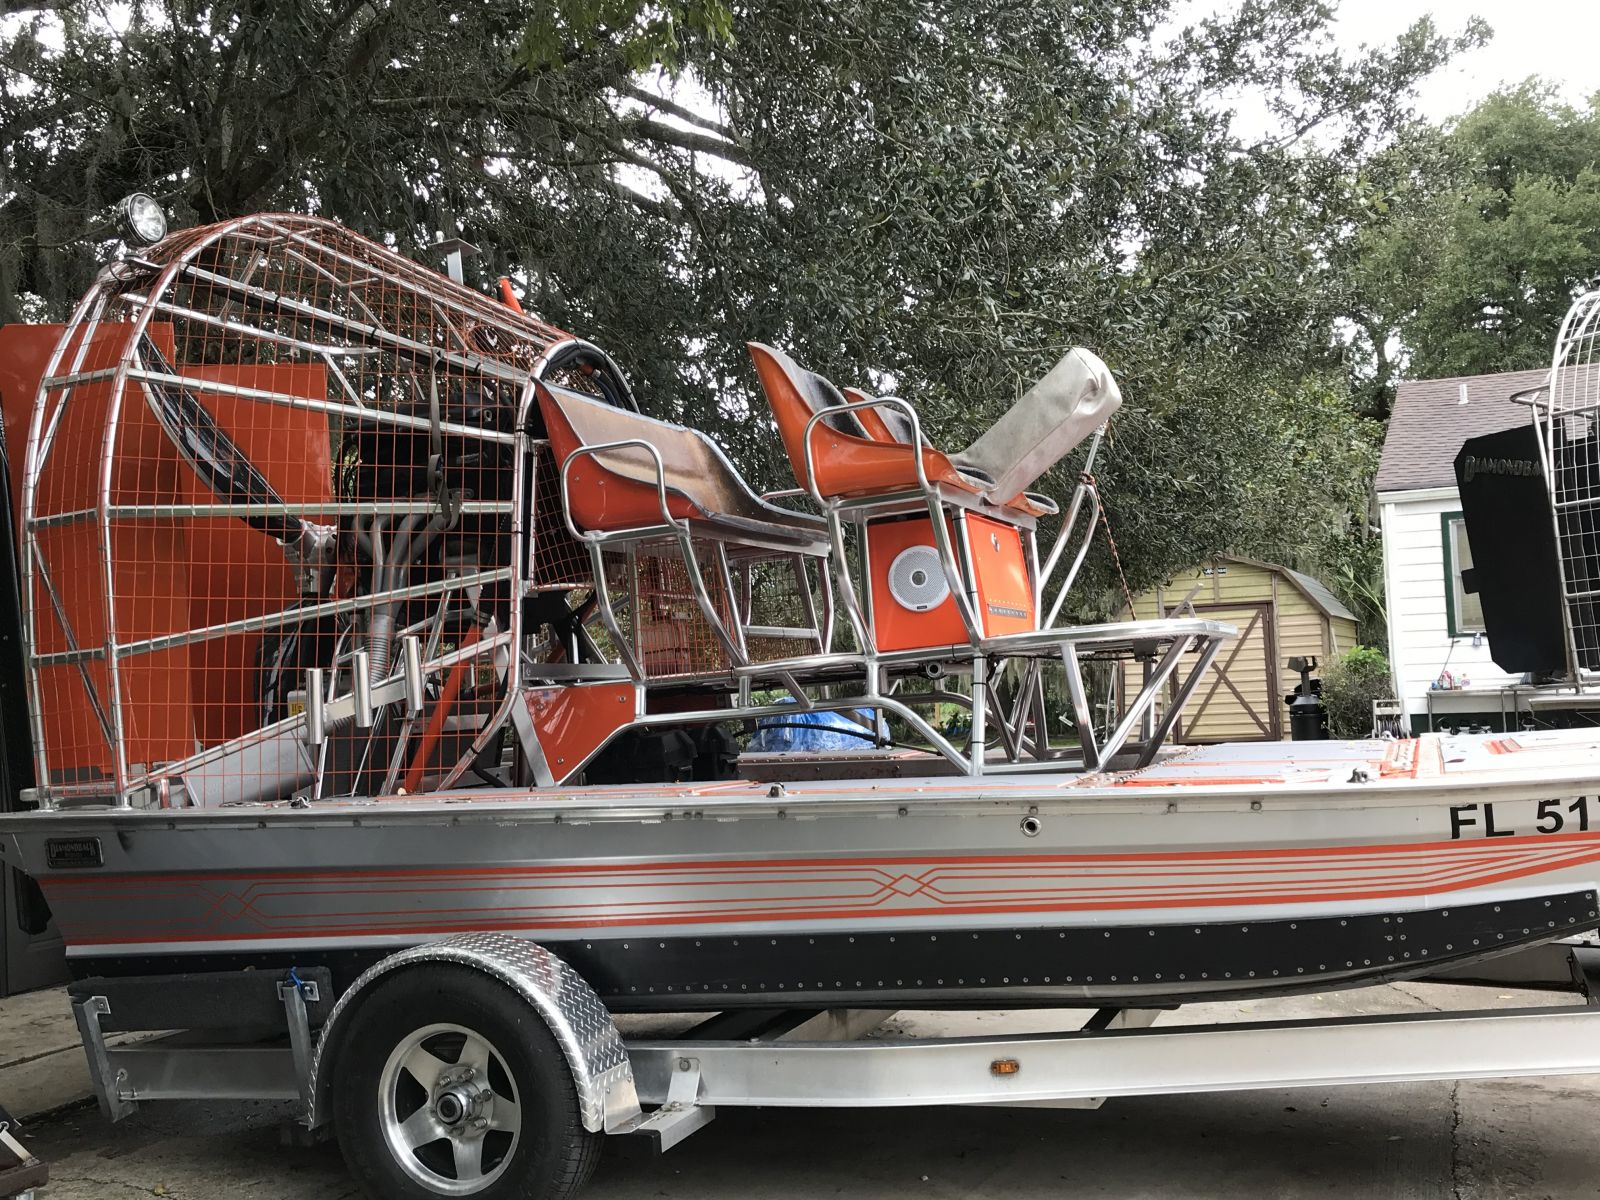 NEW! Deluxe 3 passenger private tour boat    New Orleans